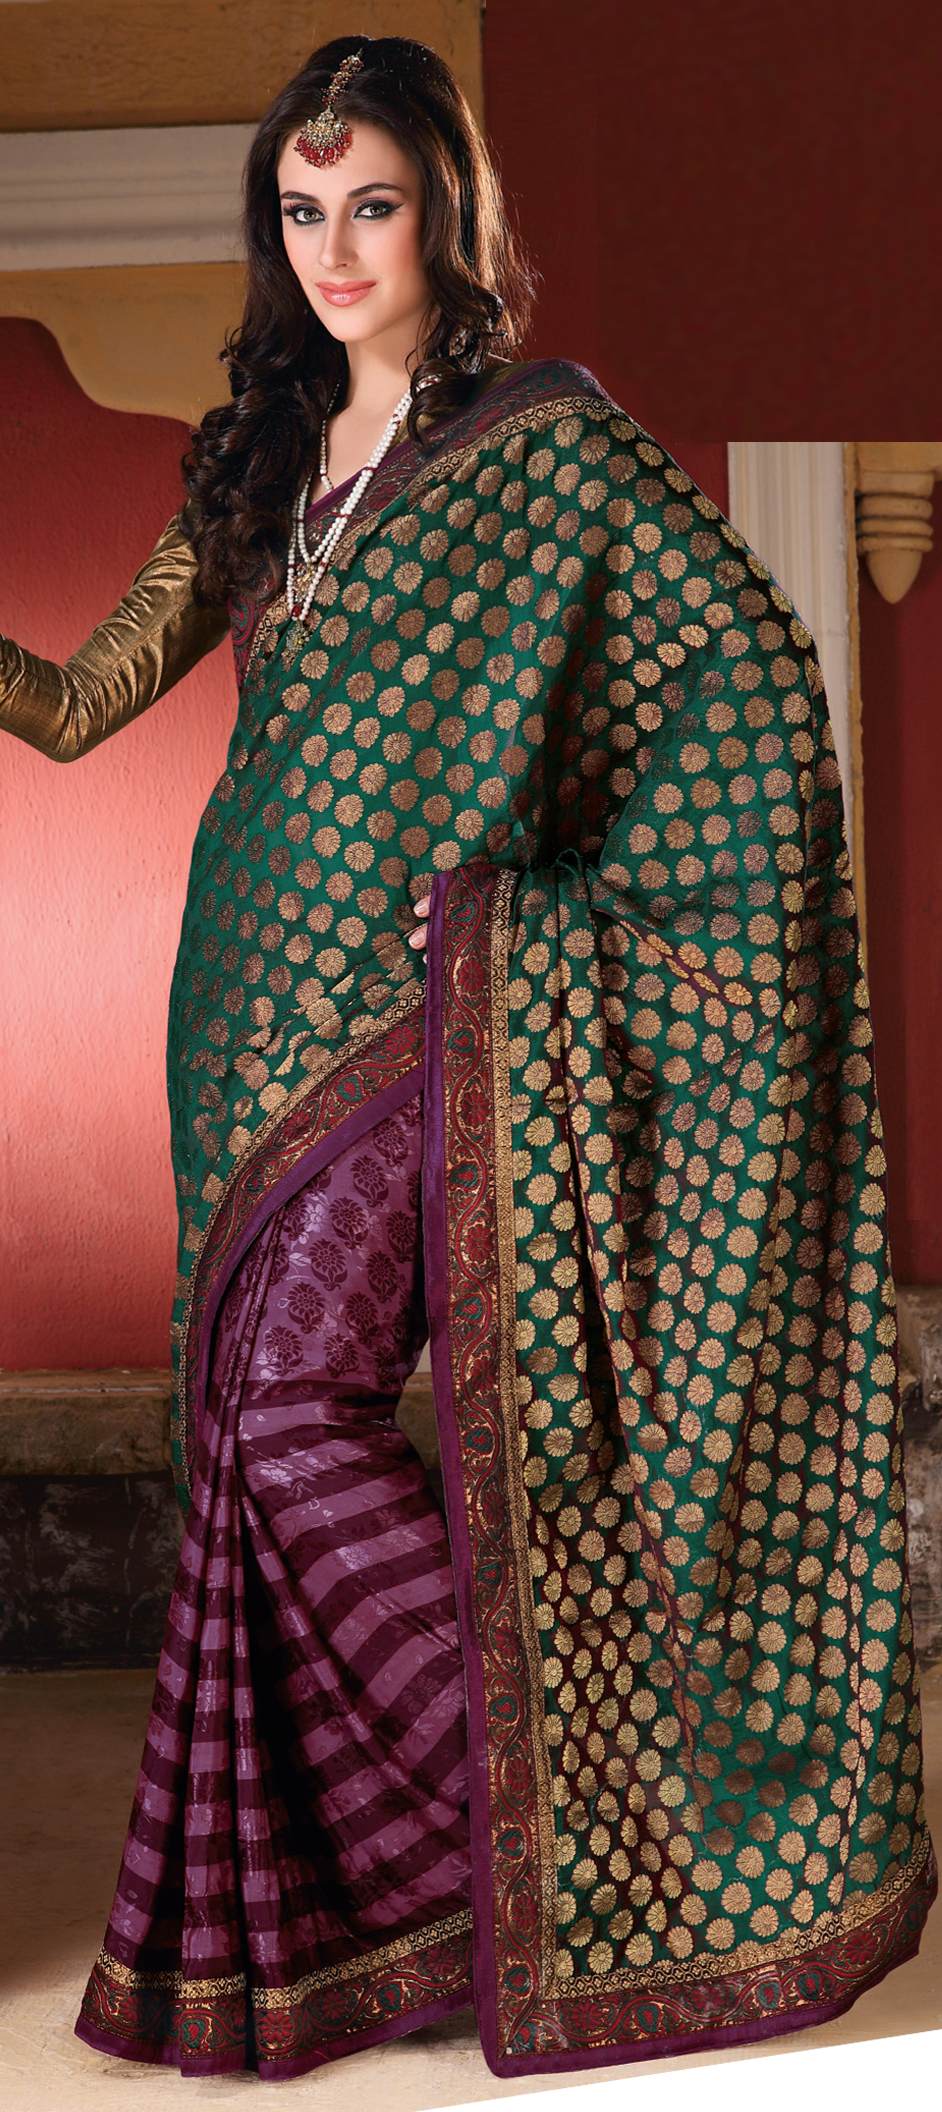 New Colors for Indian Wedding Sarees